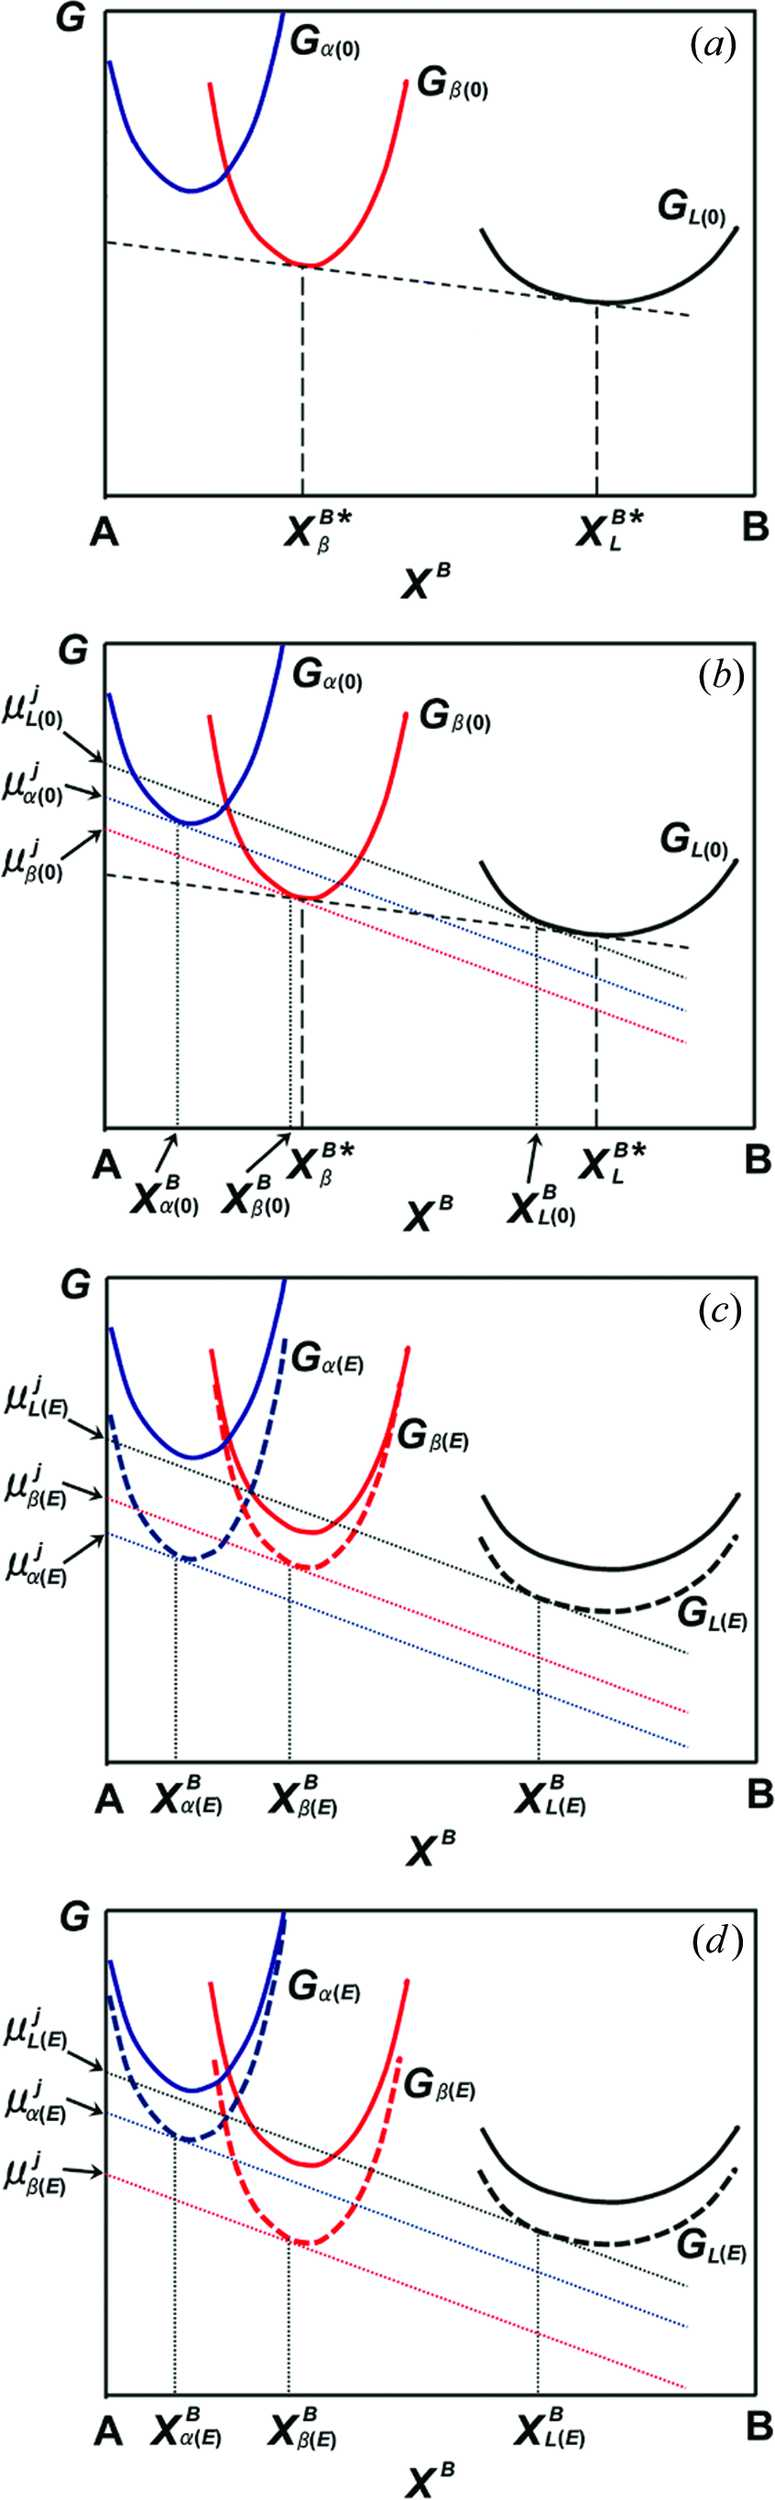 Iucr Control Of Gibbs Free Energy Relationship Between Hen Egg Diagram Disable Zoom View Article Download Ppt Figure 3 Molar Diagrams